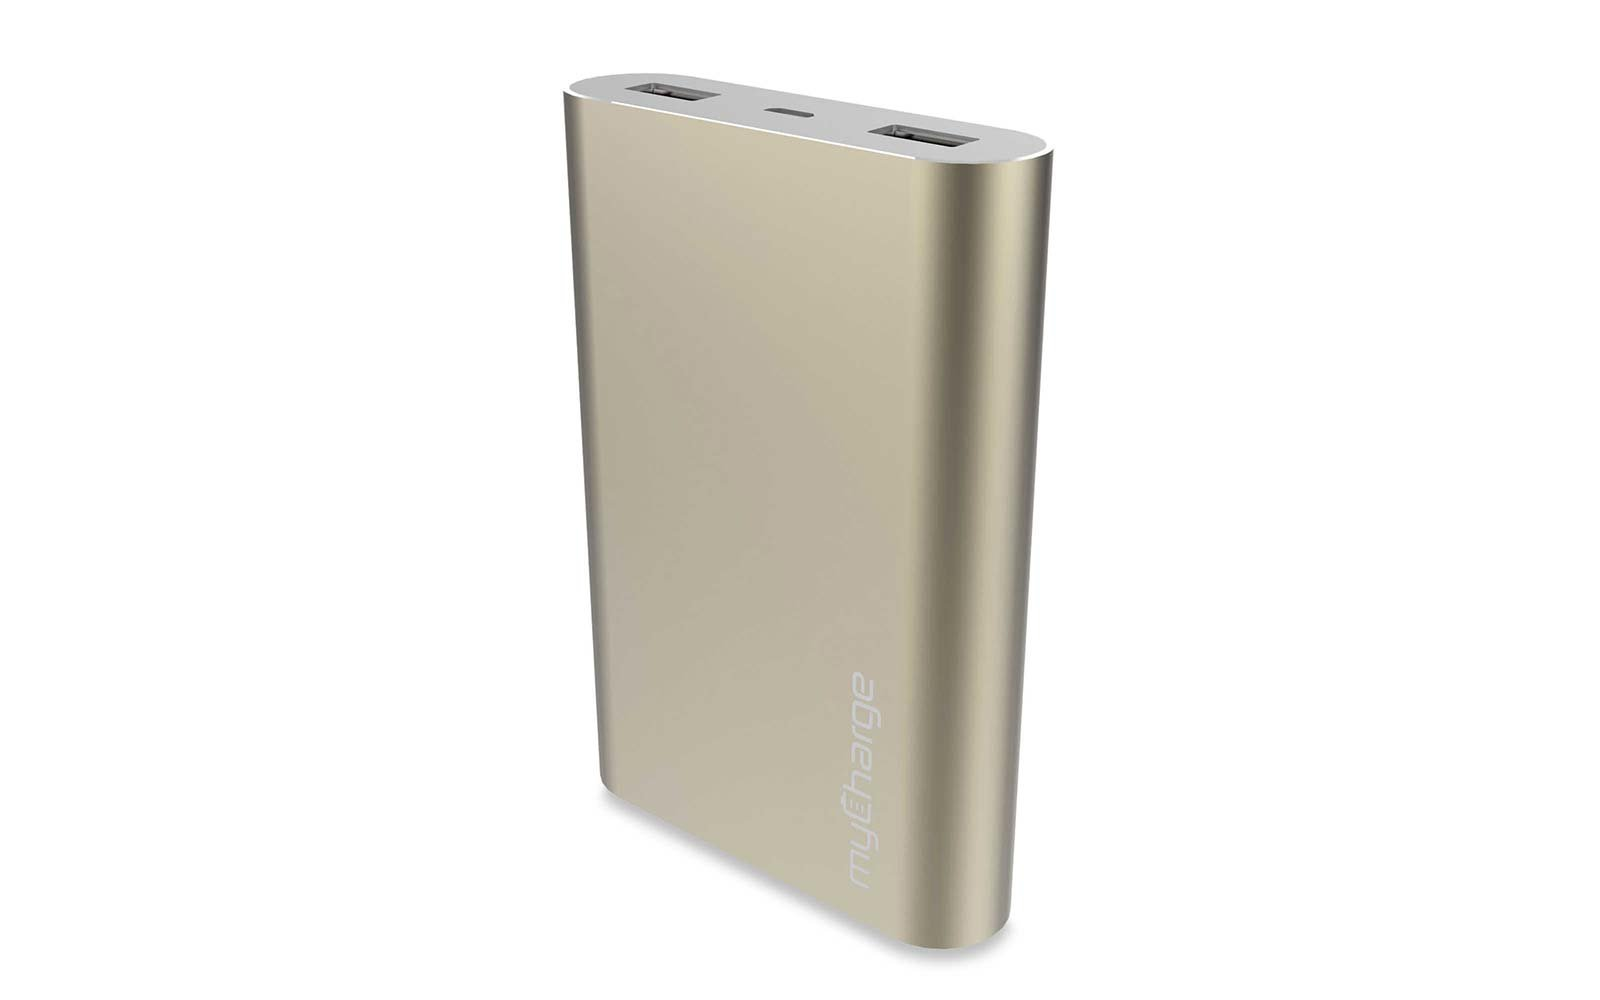 Travel Portable Phone Battery Charger MyCharge